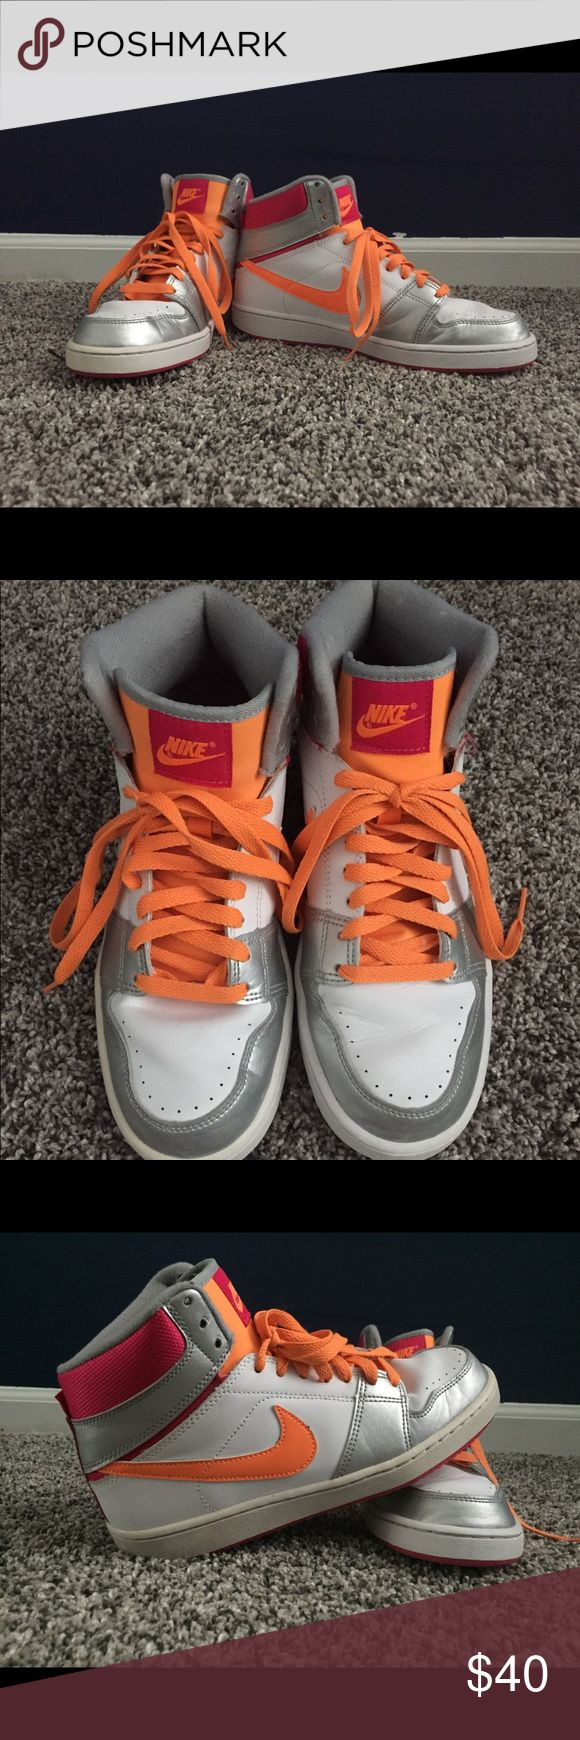 Nike high top basketball shoes Ladies Nikes, High top Basketball shoes. Never been worn outside! No scuffs, marks, or stains. Nike Shoes Athletic Shoes